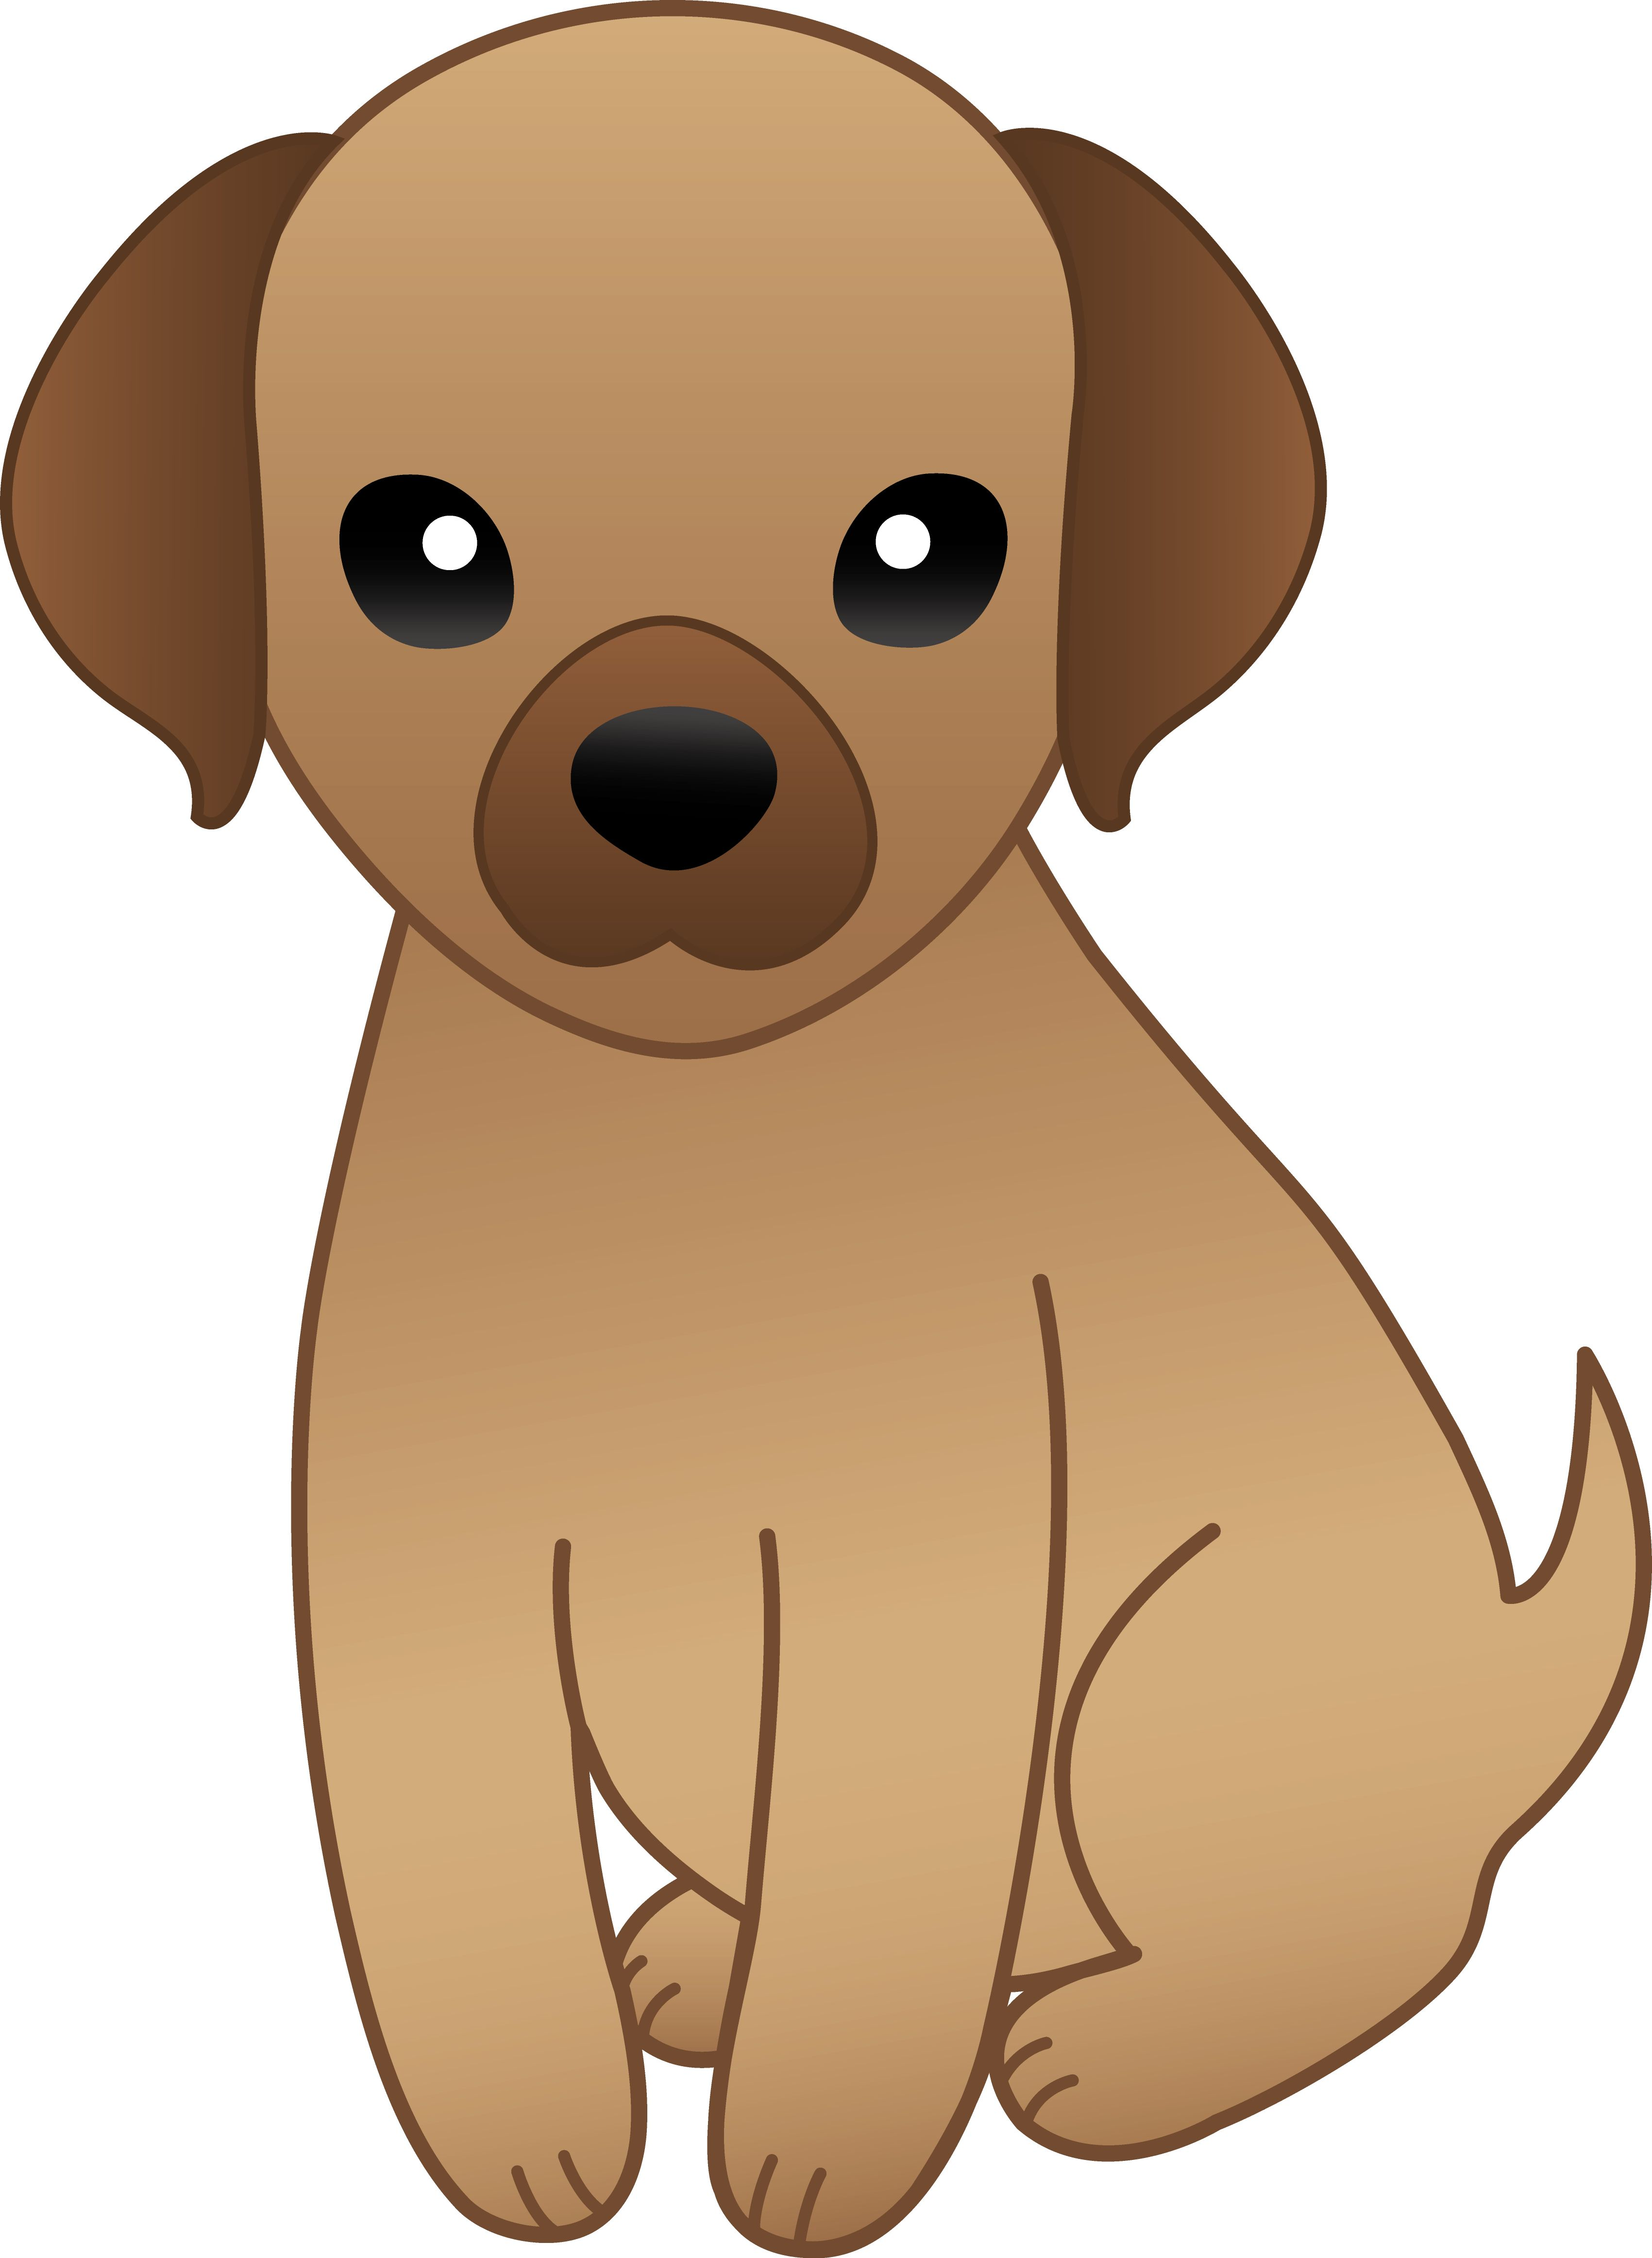 Brown puppy clipart clip art free stock Dog face reference   Ceramics 2, Project 1   Puppy clipart, Brown ... clip art free stock